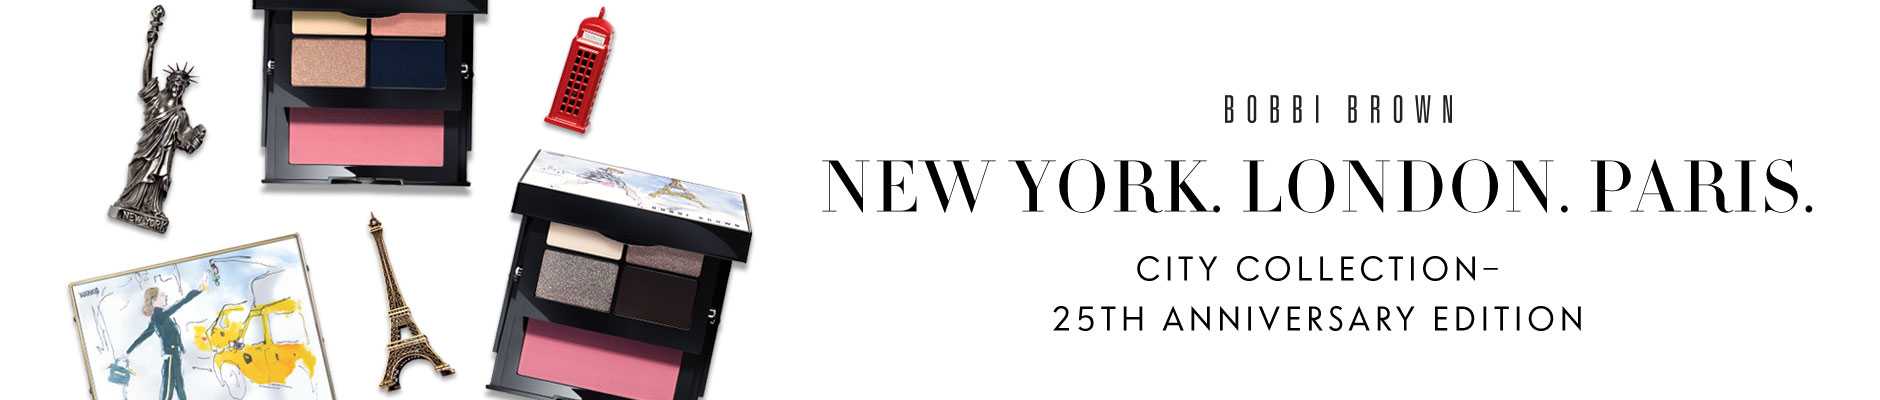 Bobbi Brown: New York. London. Paris. City Collection-25th Anniversary Edition